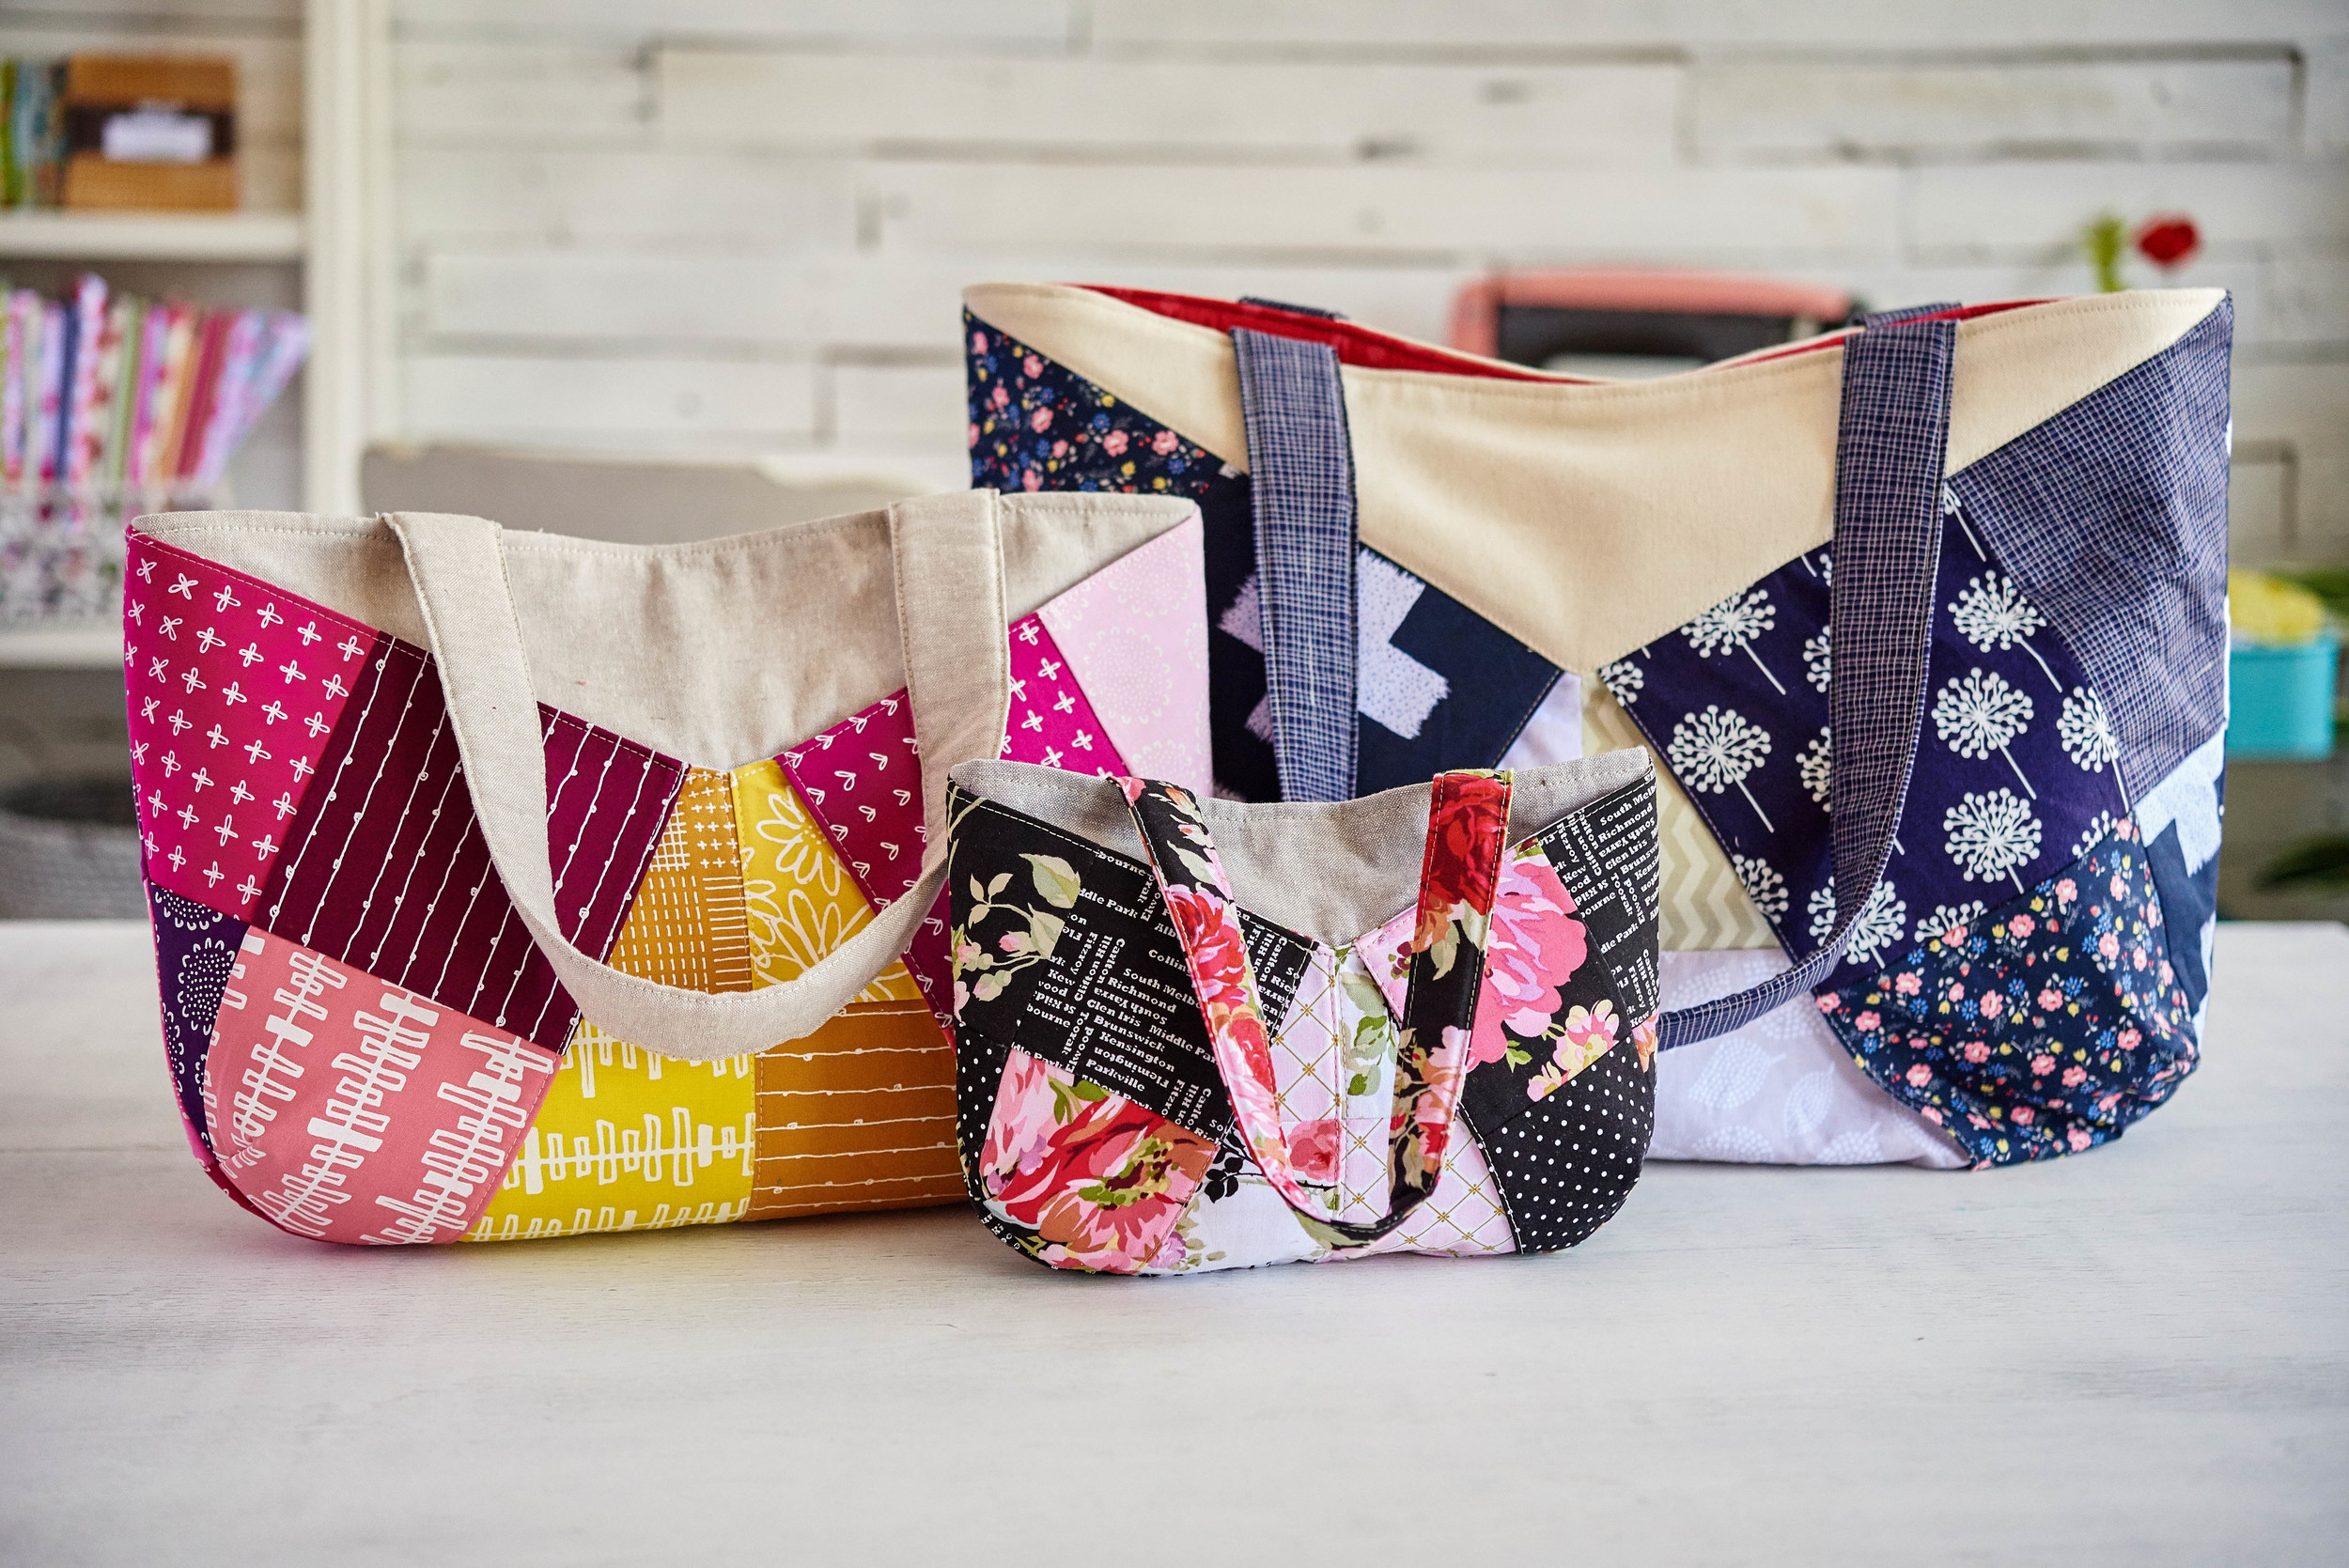 then these totes...